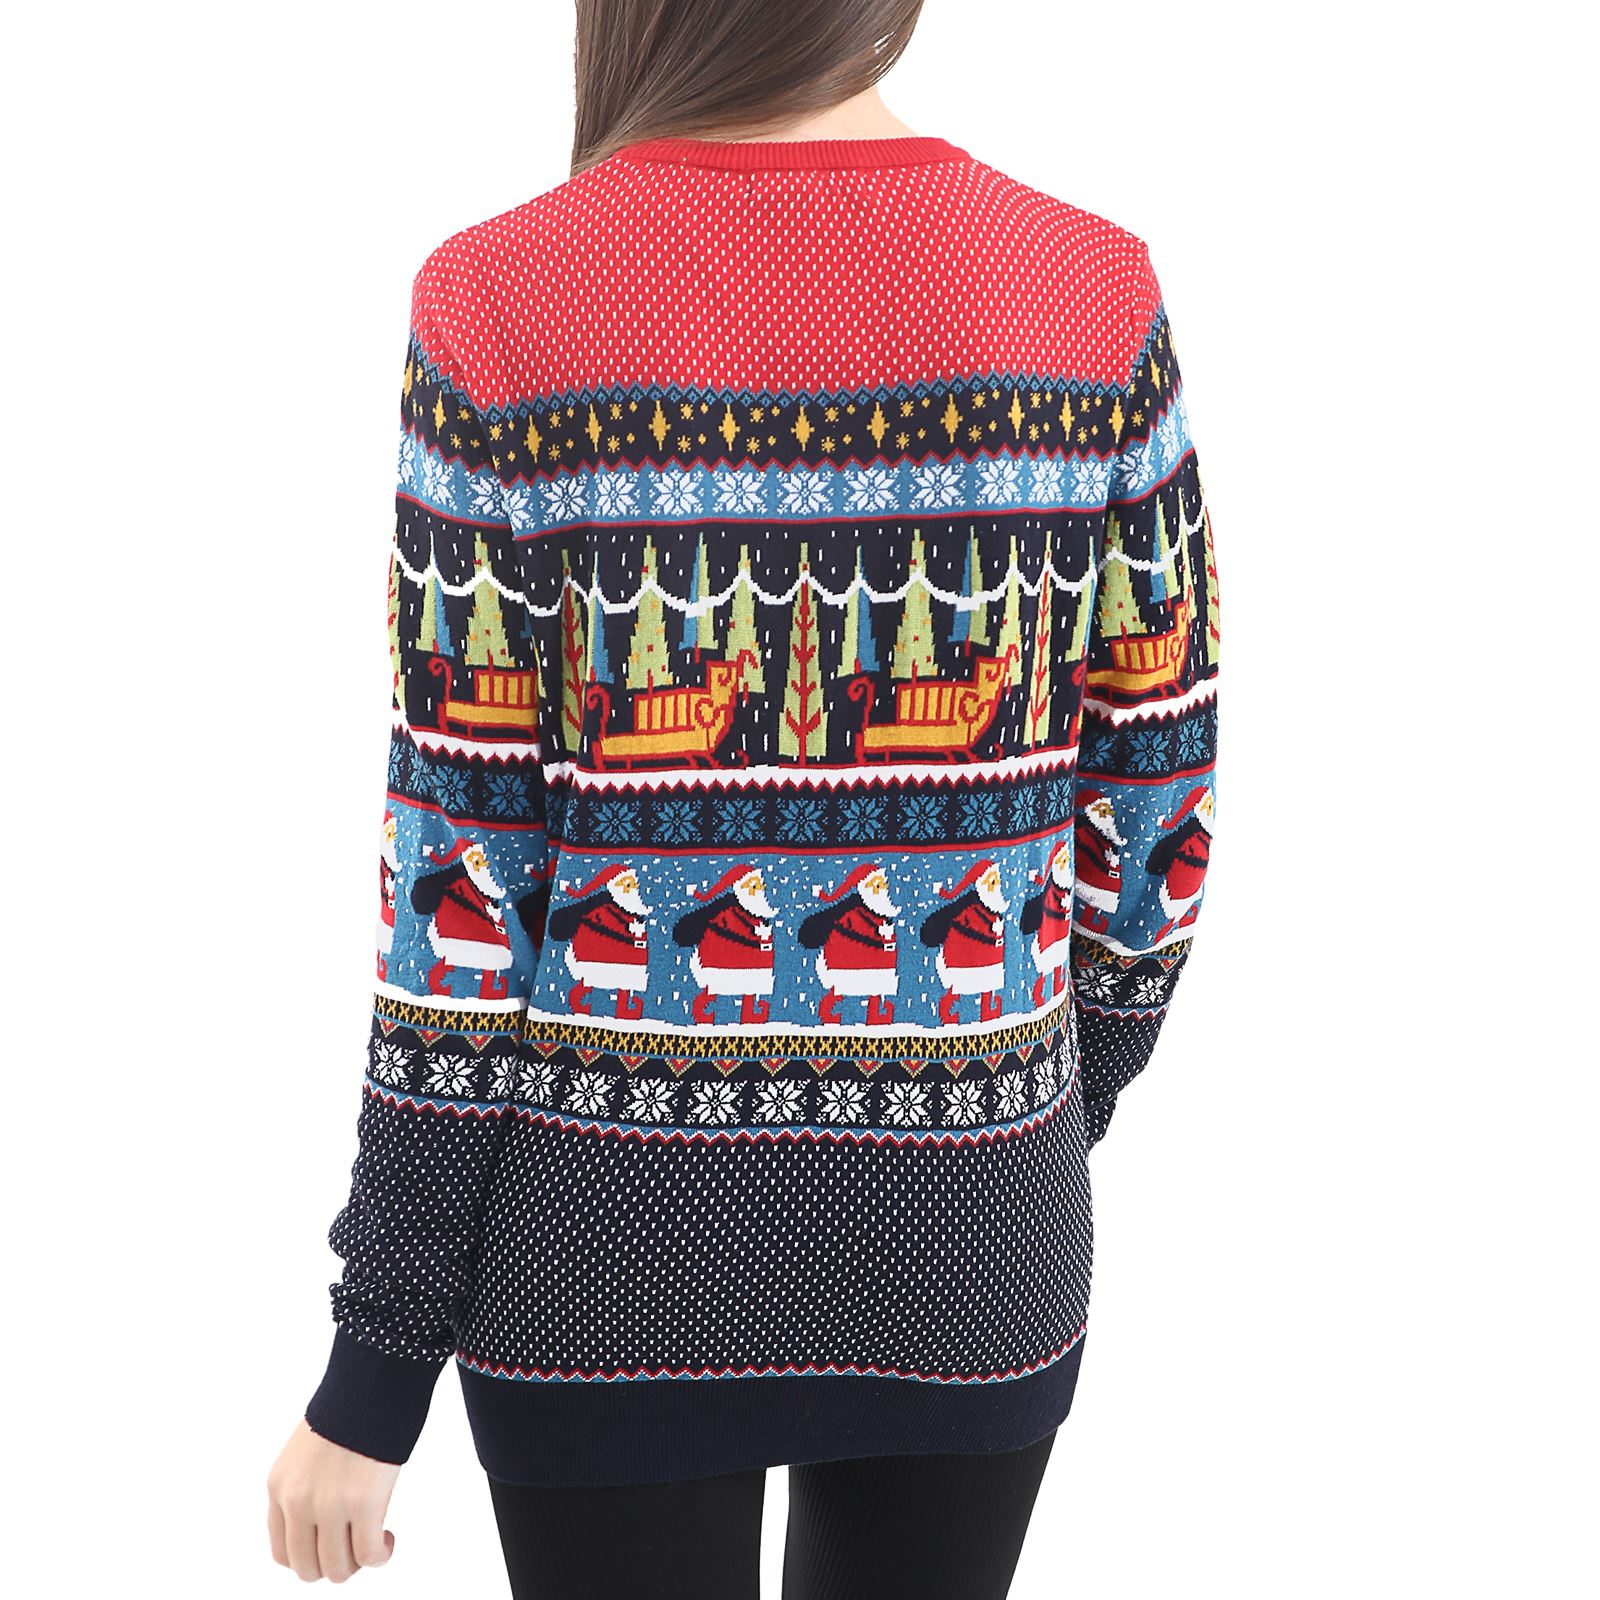 Mens-Ladies-Ex-Store-Matching-Christmas-Sweater-Jumper-Sweatshirt-Xmas-His-Hers thumbnail 22